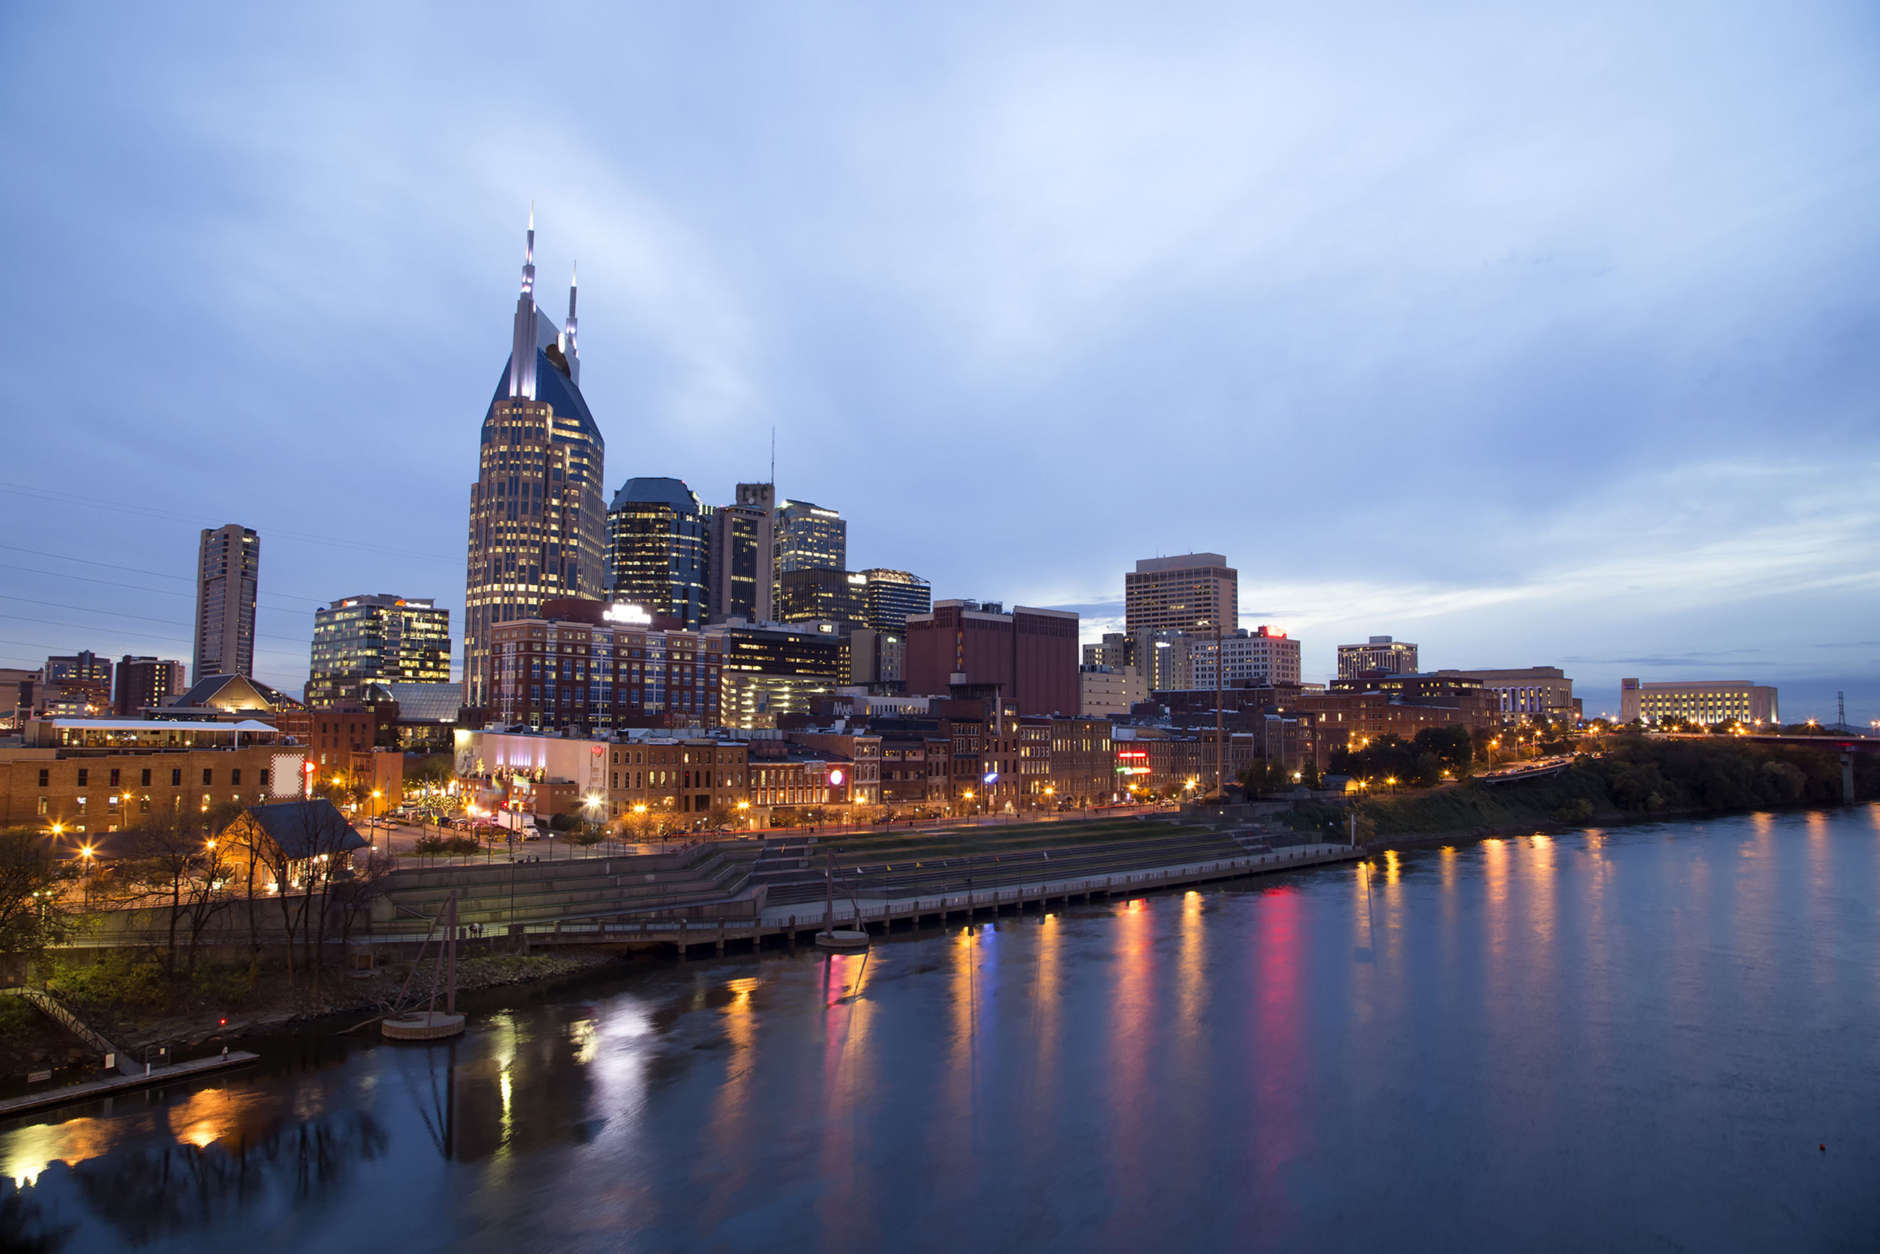 Nashville Skyline at sunset with reflections in river.  An Autumn afternoon with a colorful blue sky at twilight and the city lights all lit up. (Thinkstock)